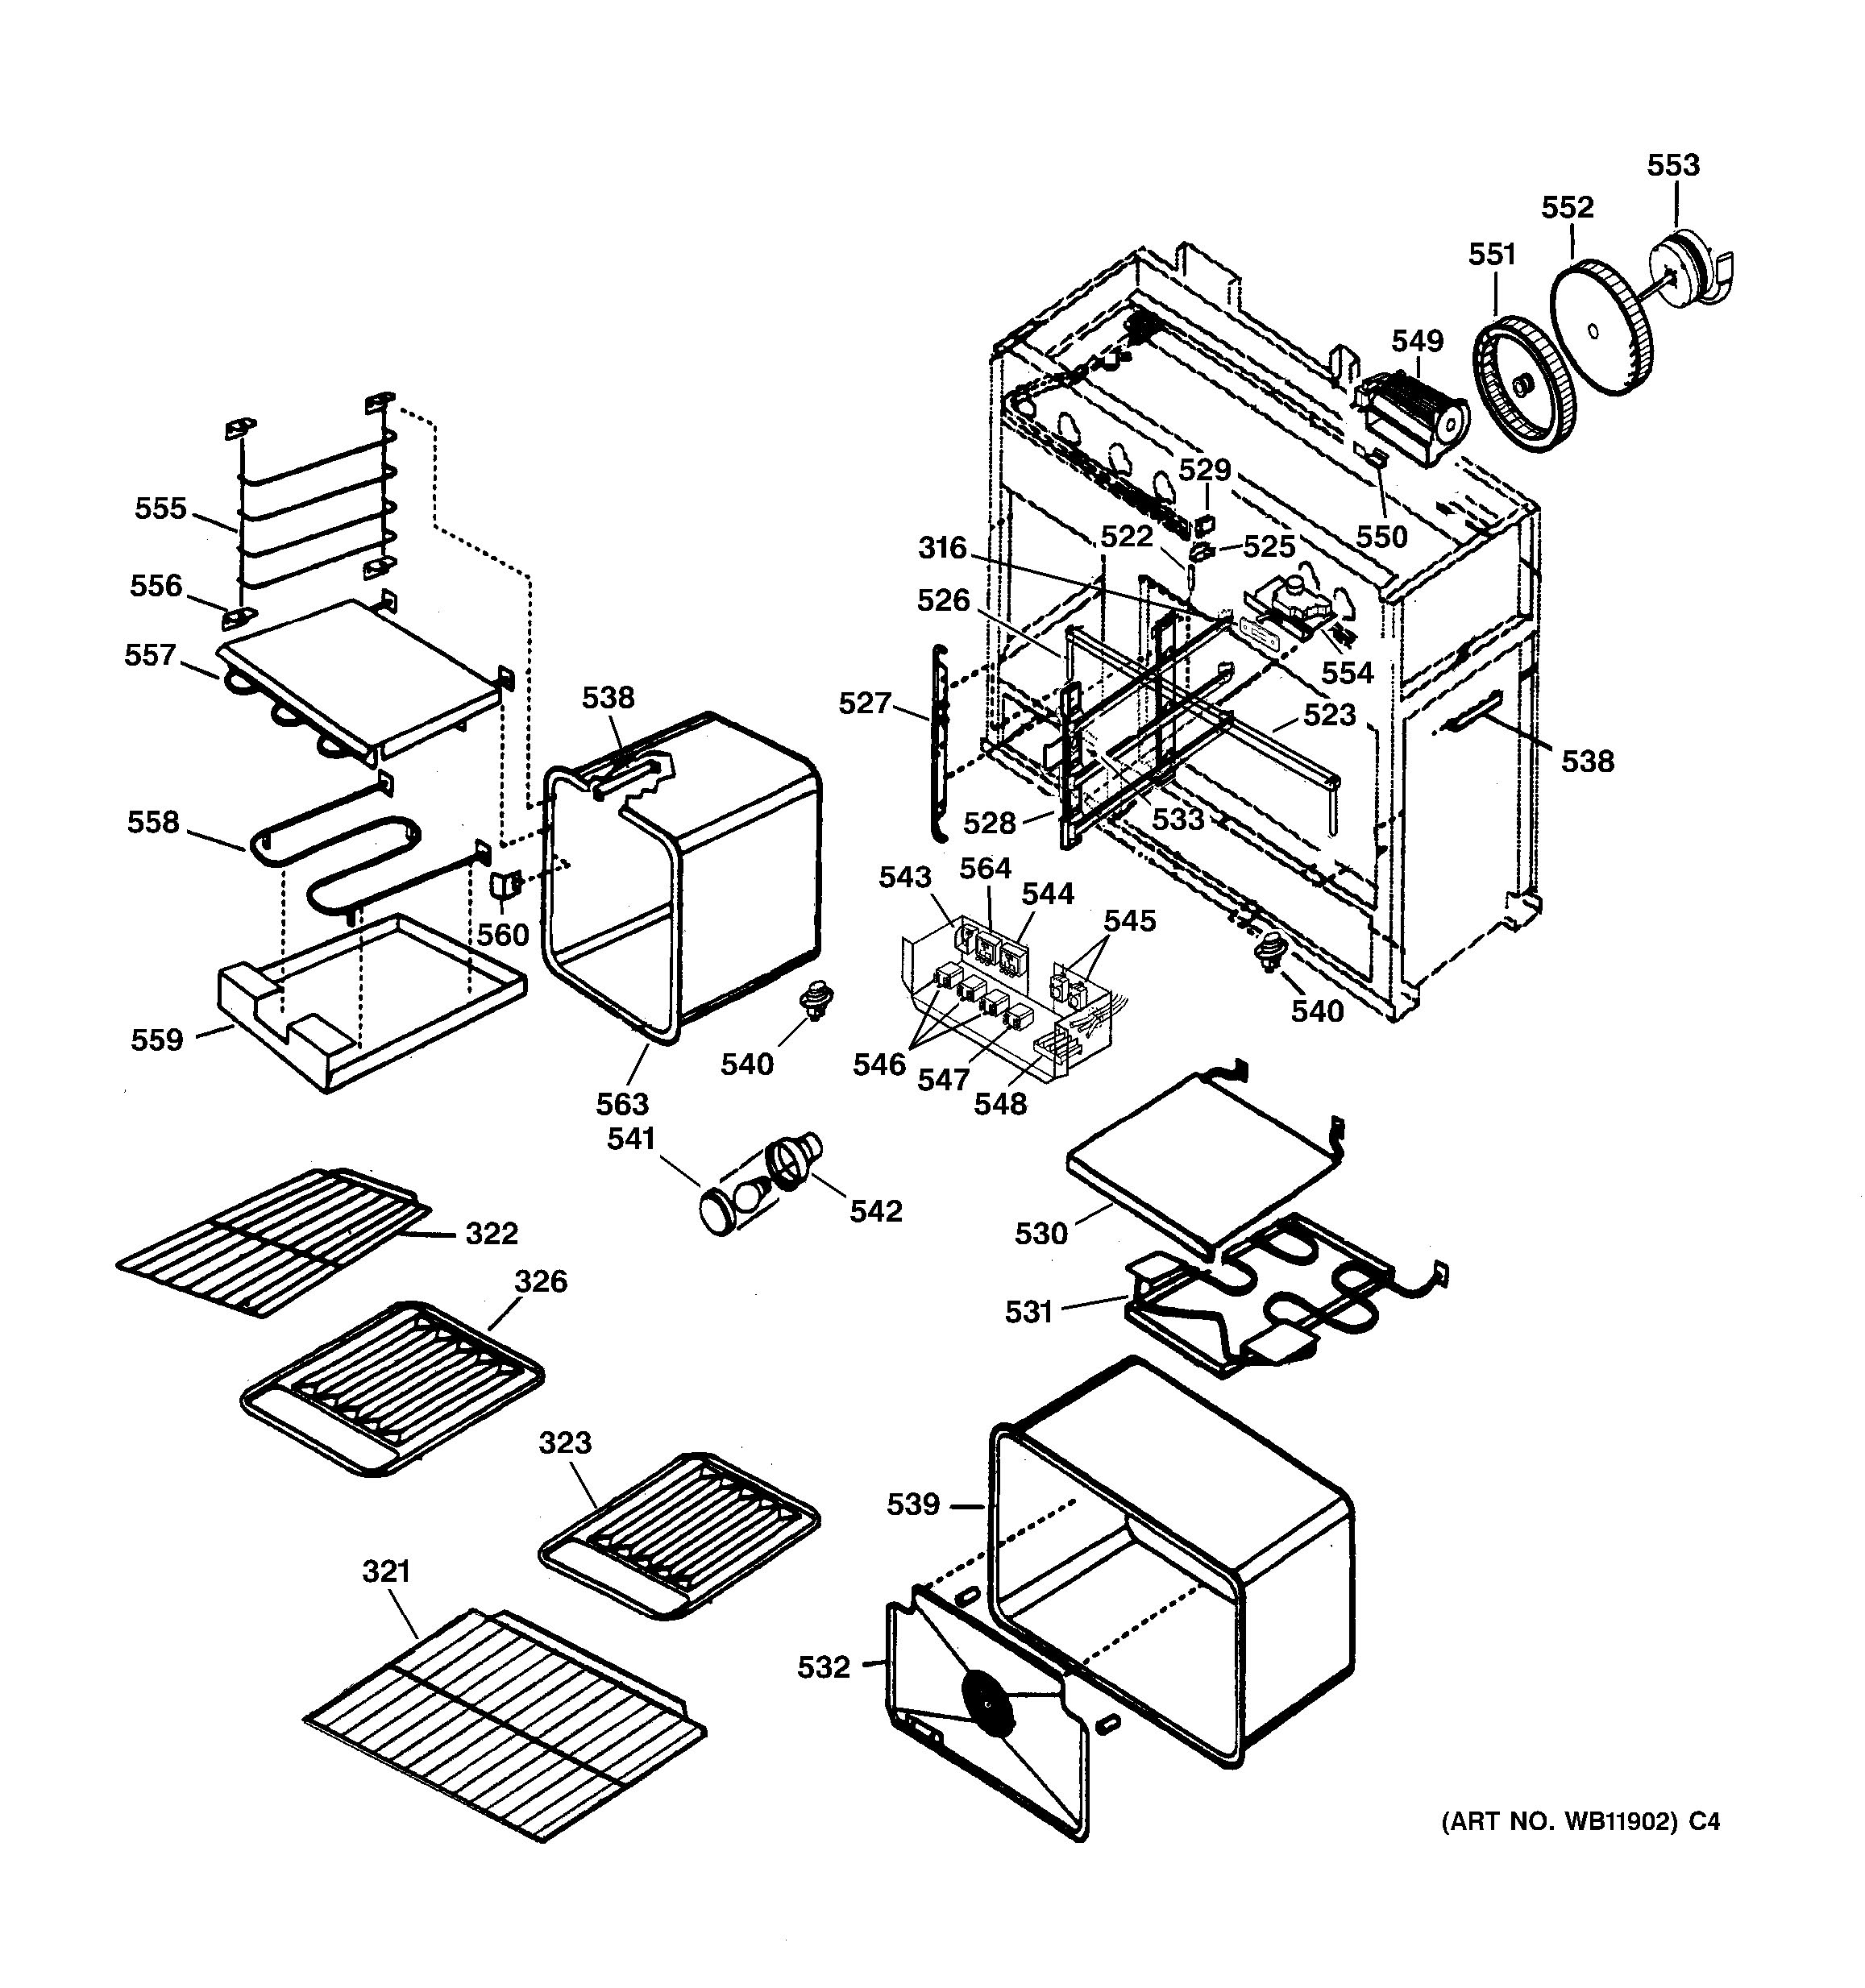 Assembly View For Oven Assembly Zdp48n4gd1ss